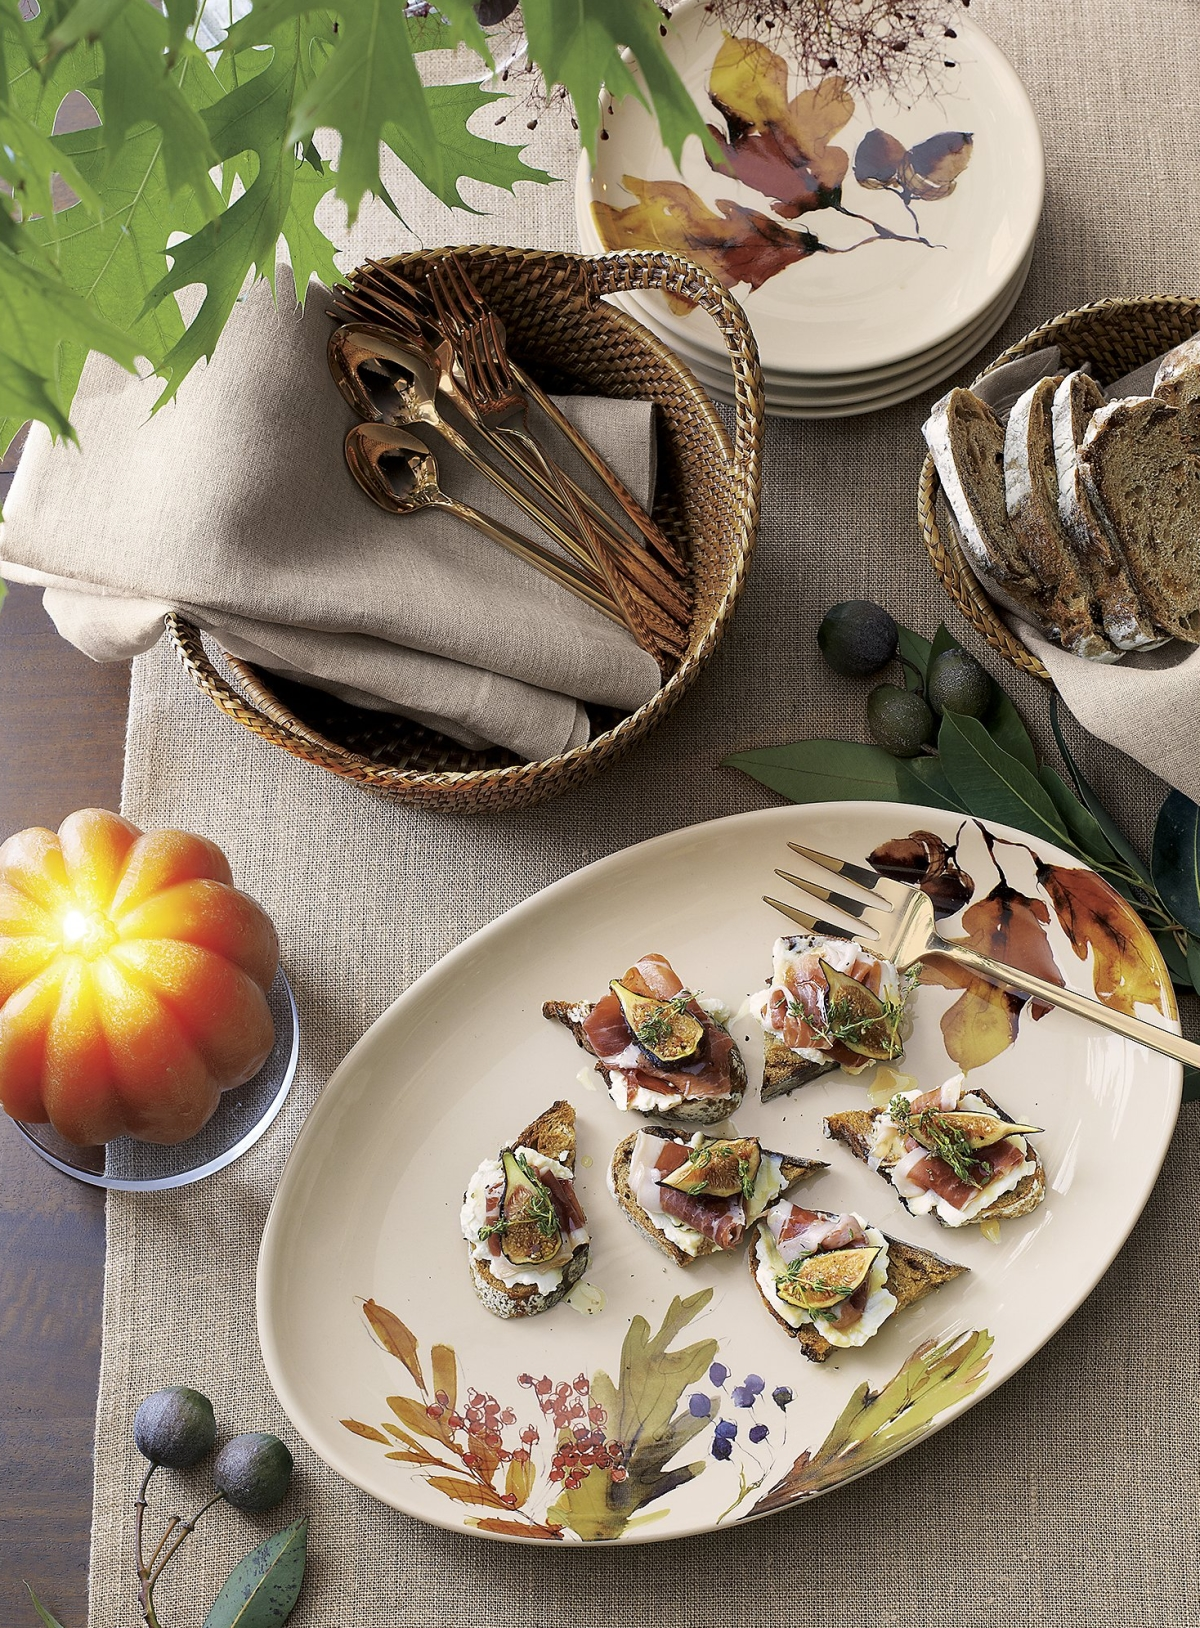 Autumn platter from Crate & Barrel